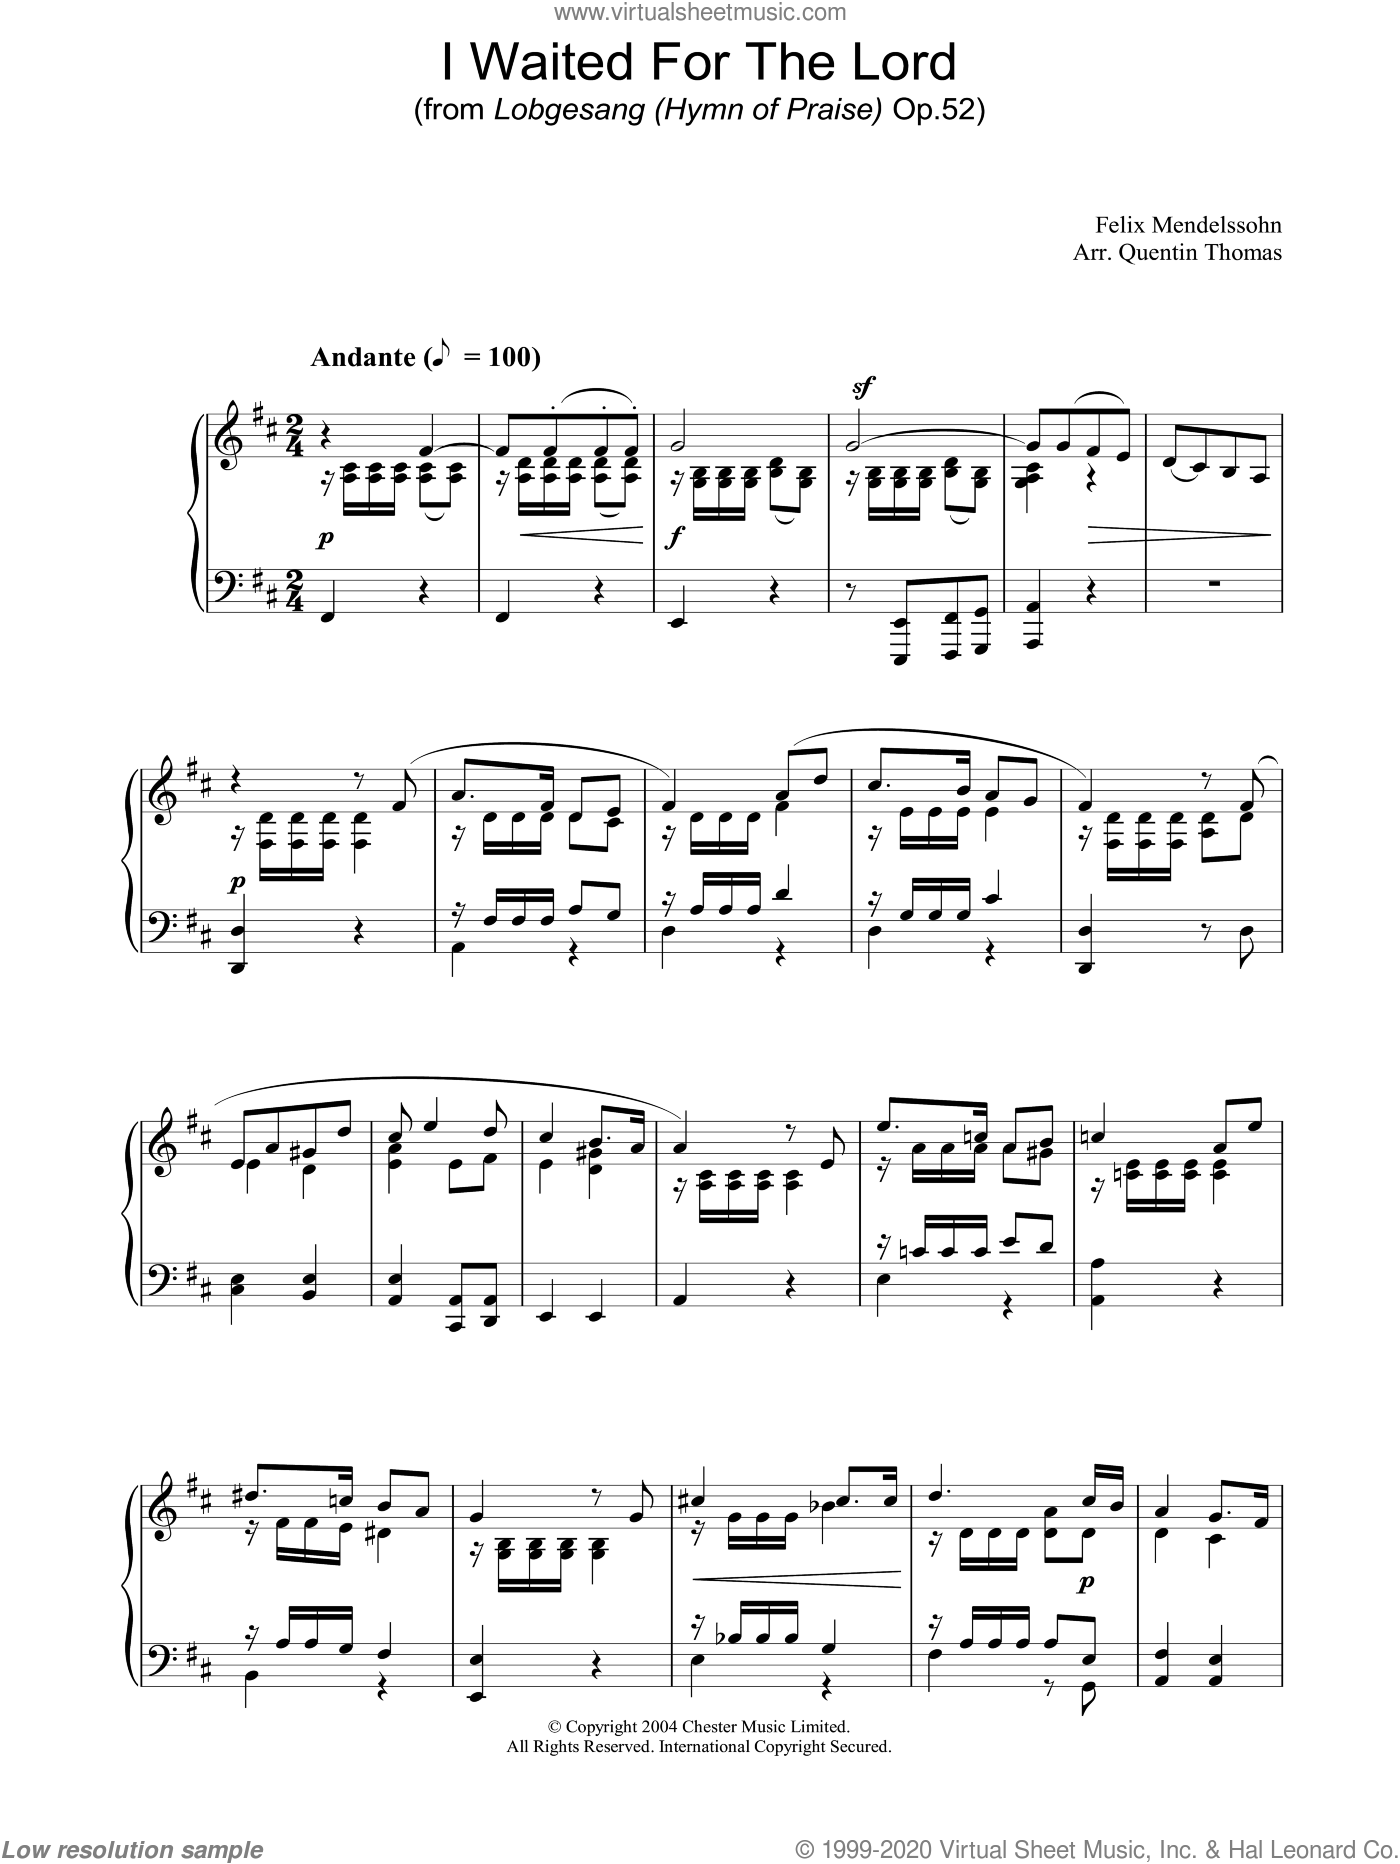 I Waited For The Lord sheet music for piano solo by Felix Mendelssohn-Bartholdy, classical score, intermediate skill level